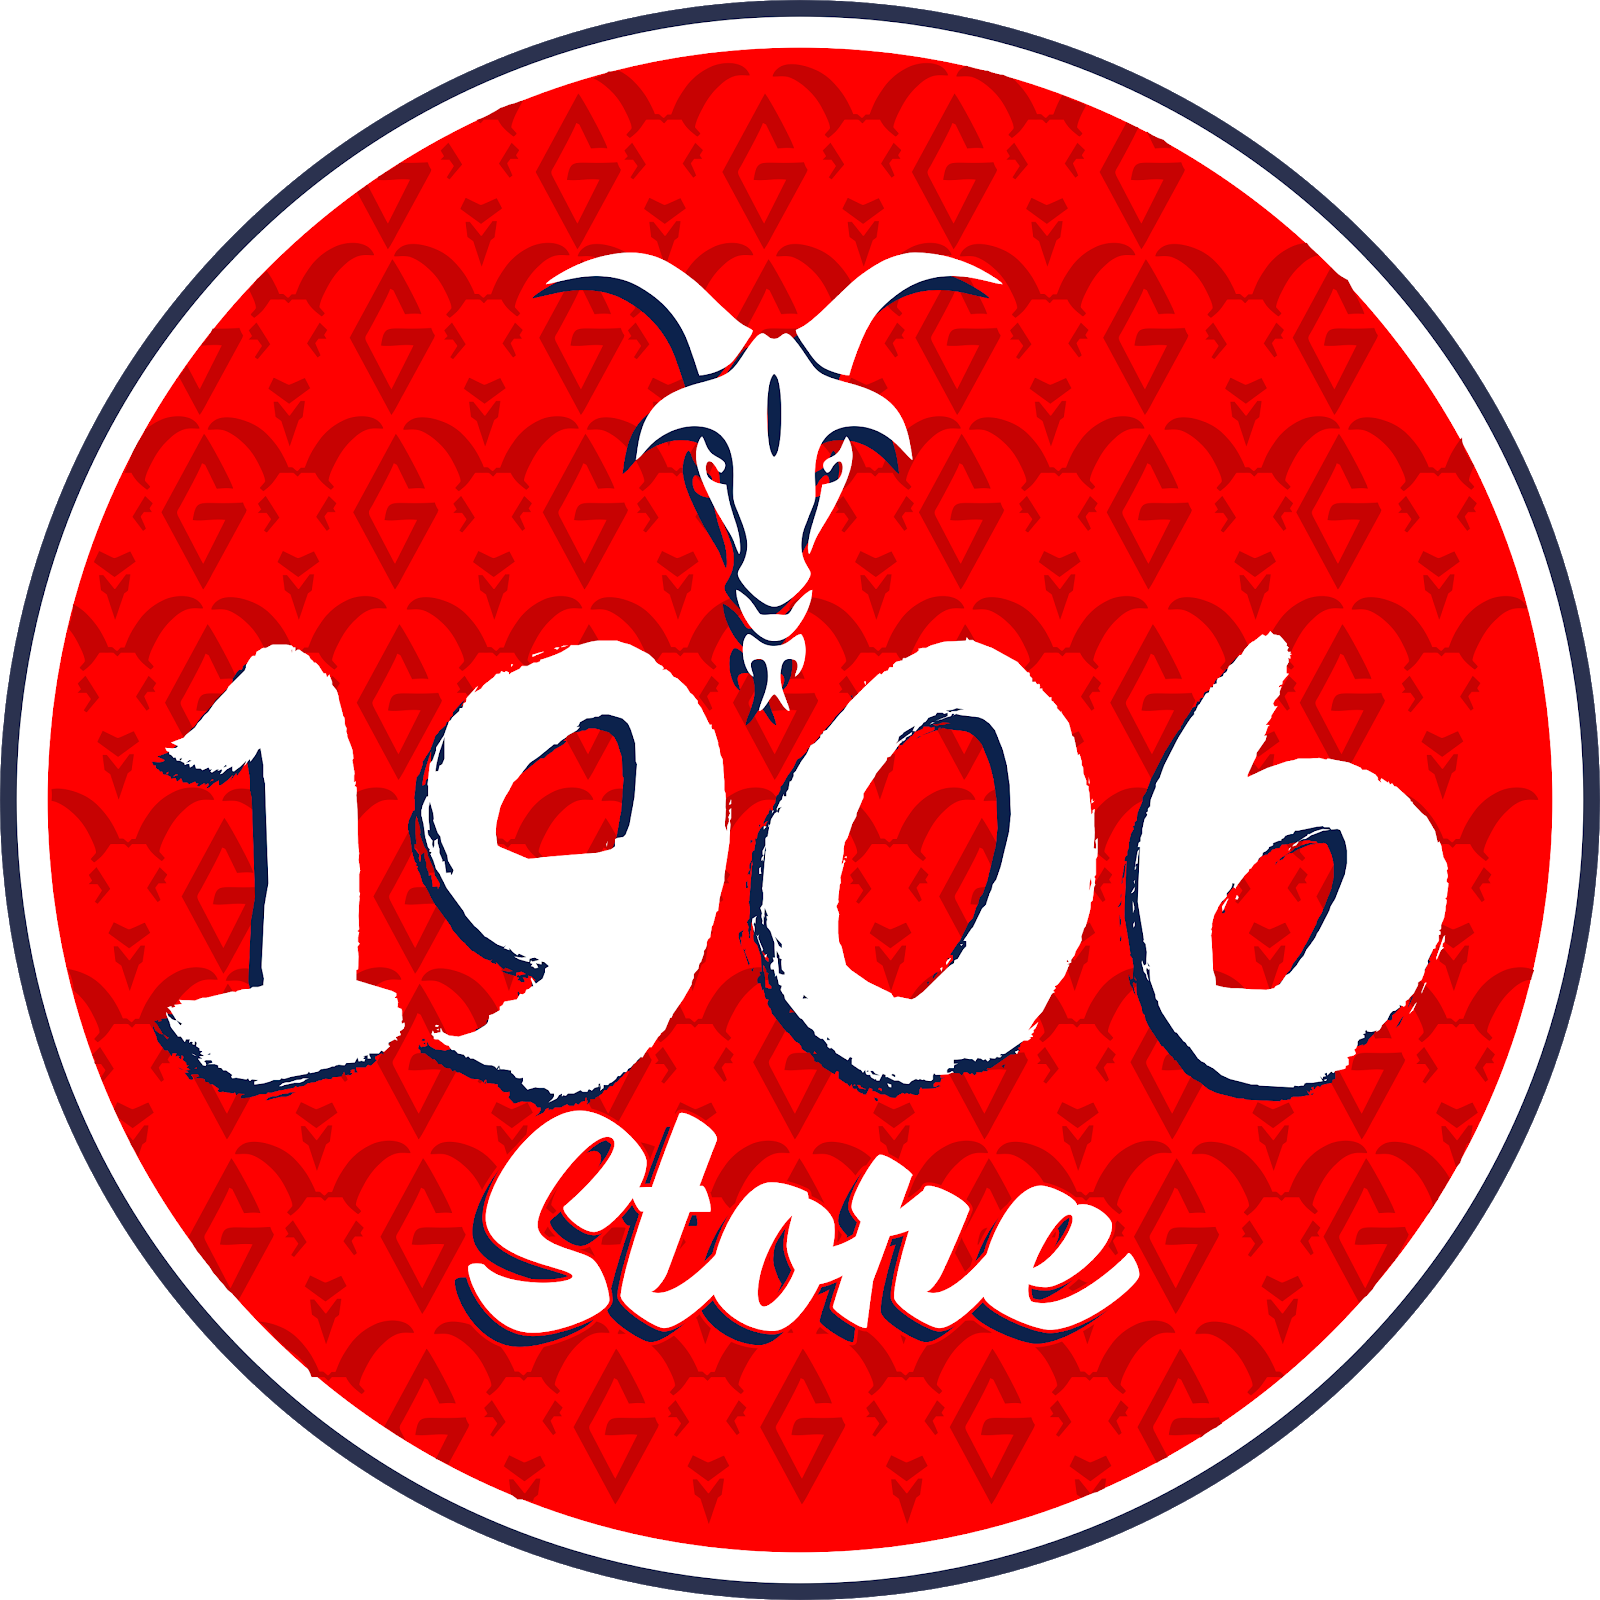 1906 Store